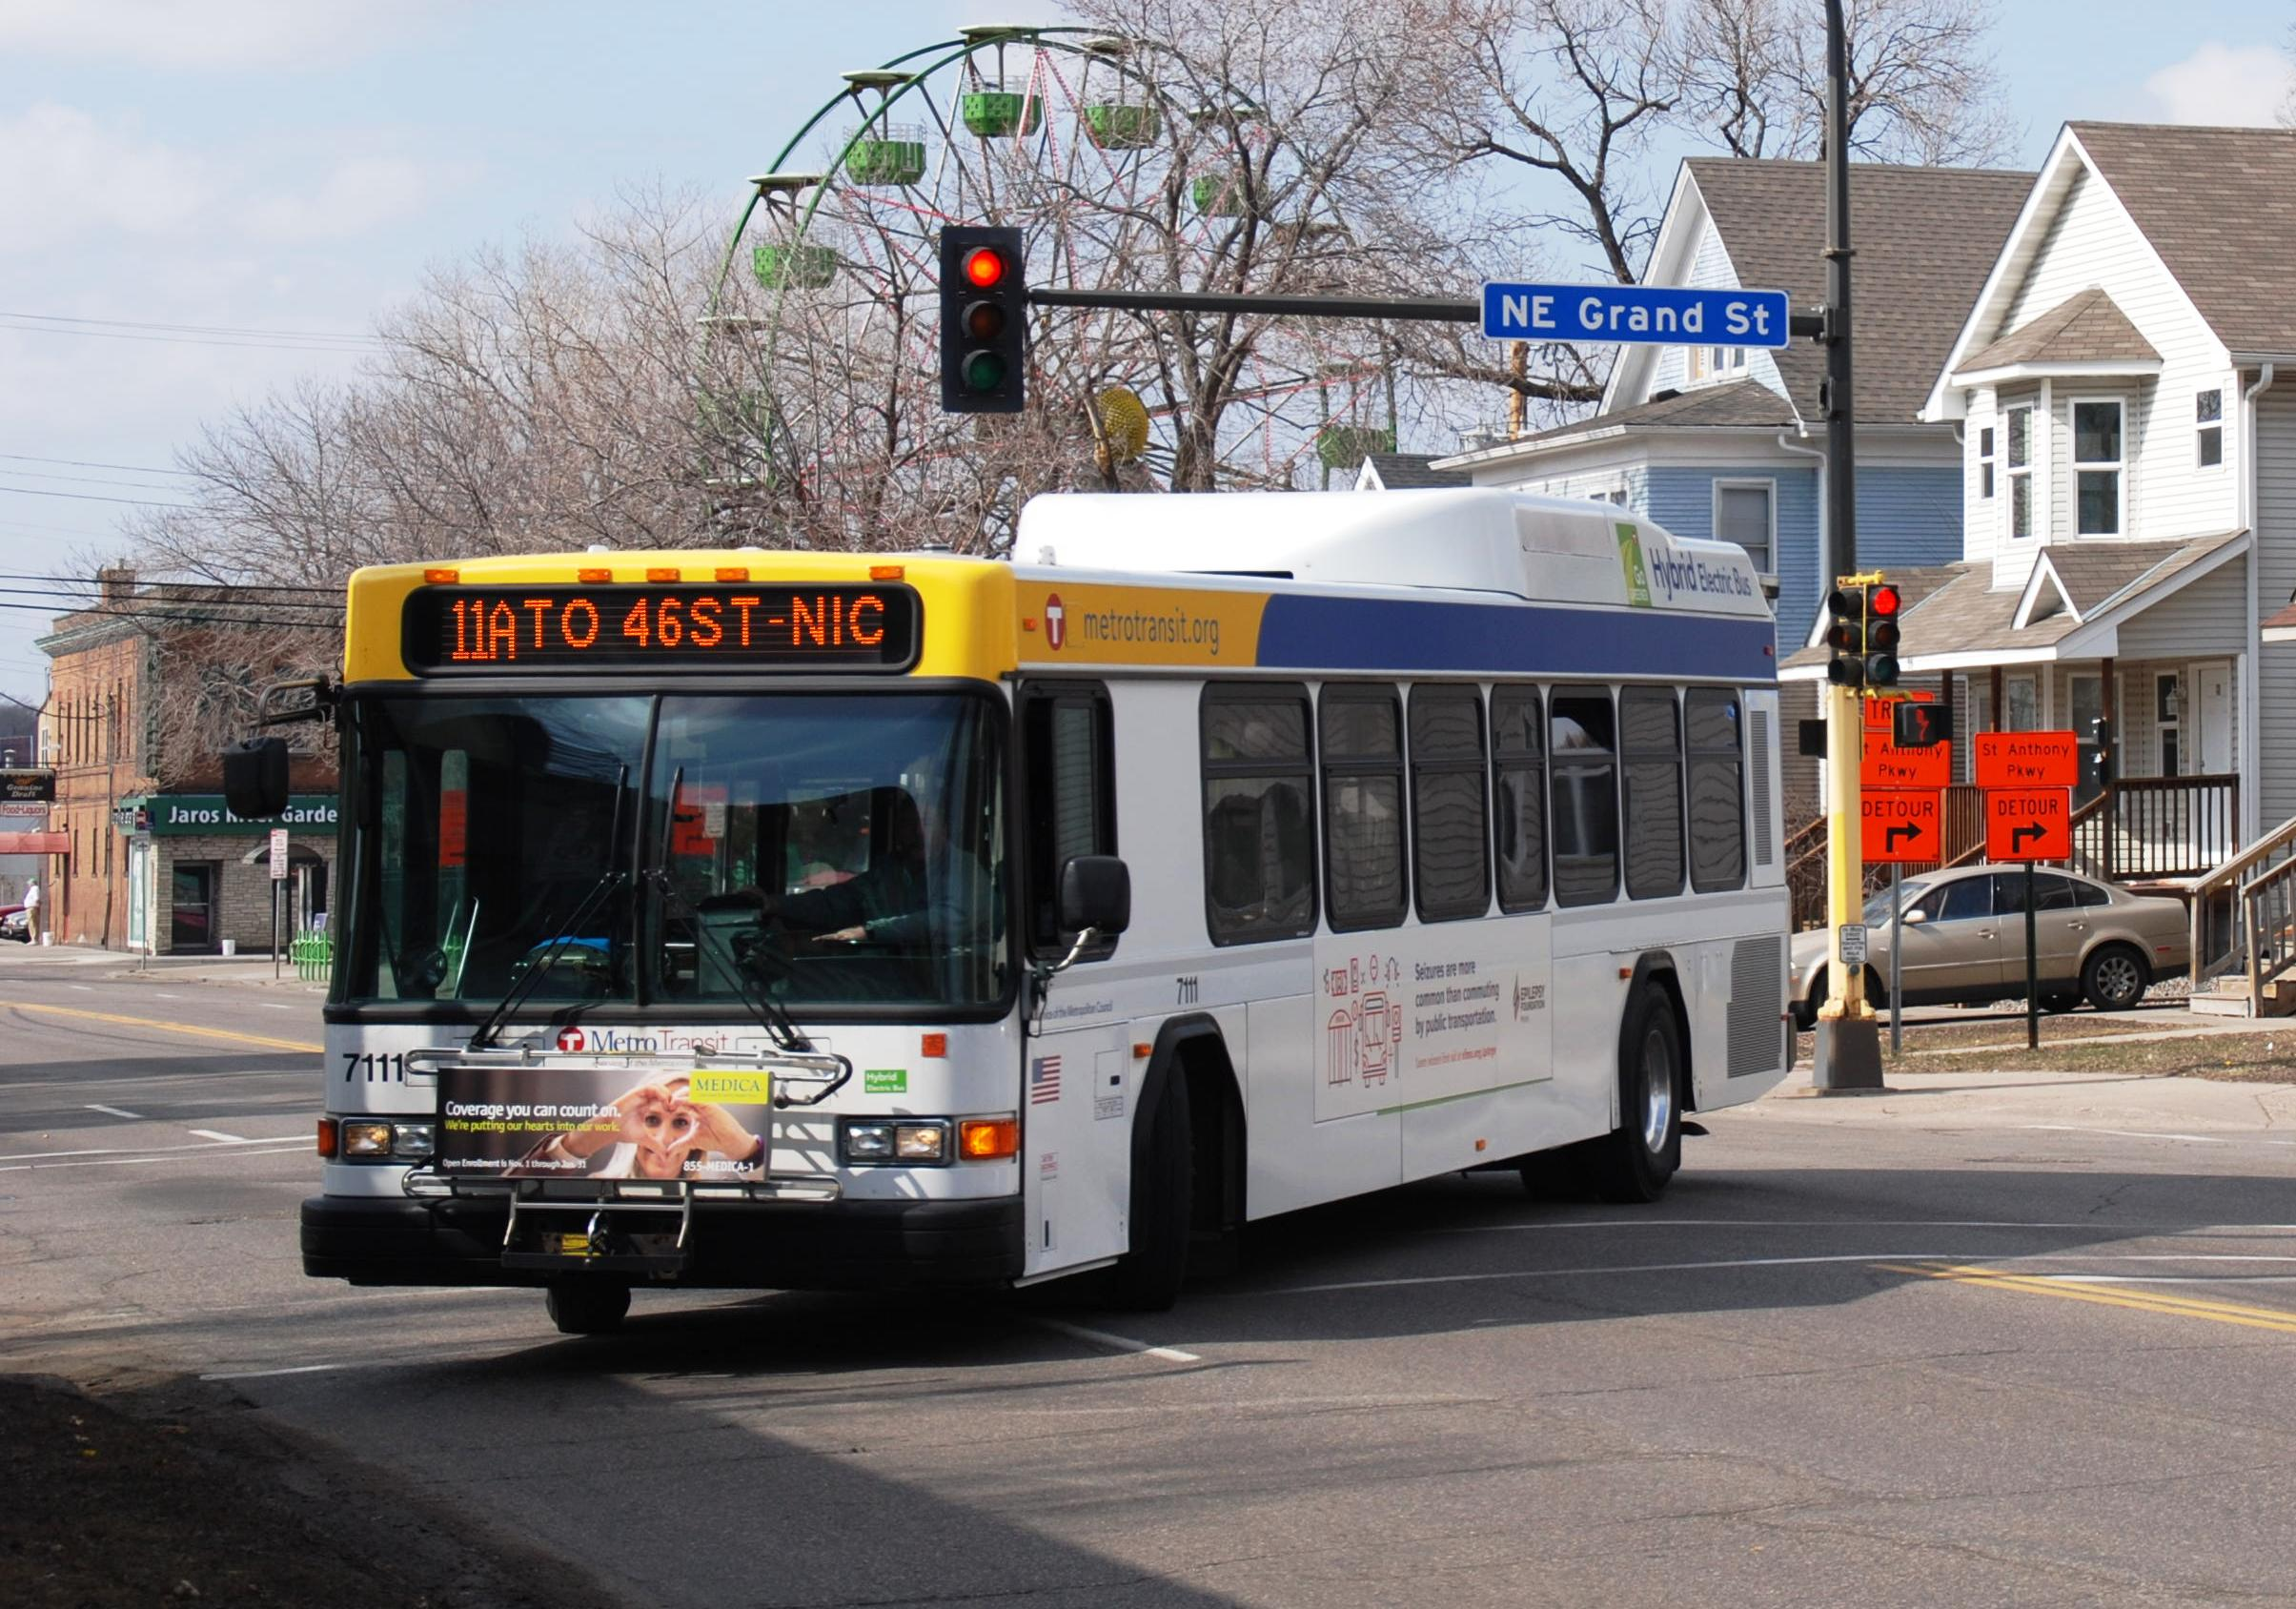 route 11 joining hi-frequency network - metro transit